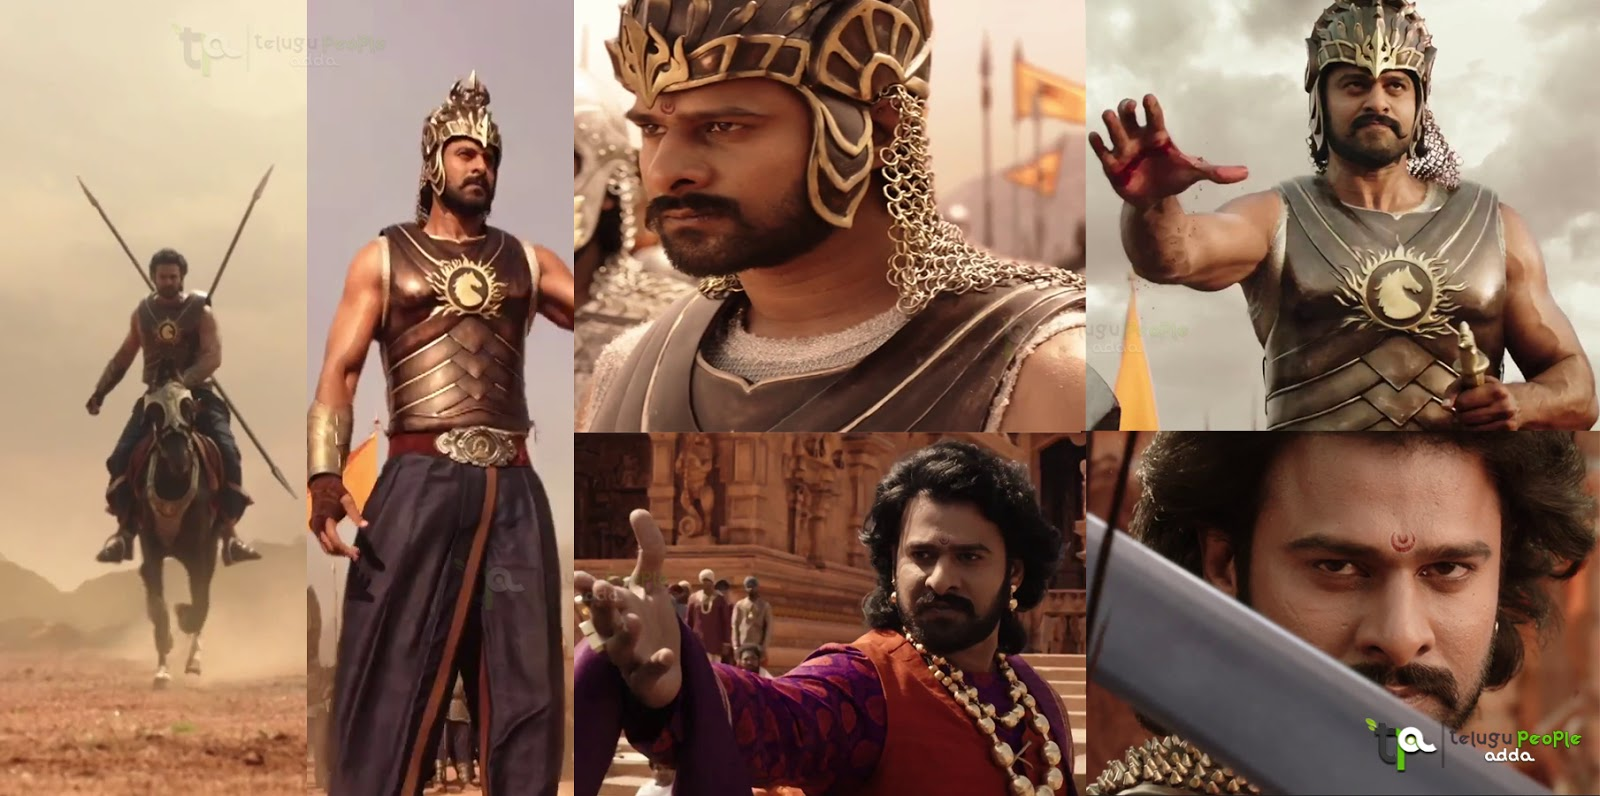 prabhas latest hd stills from baahubali movie | photos